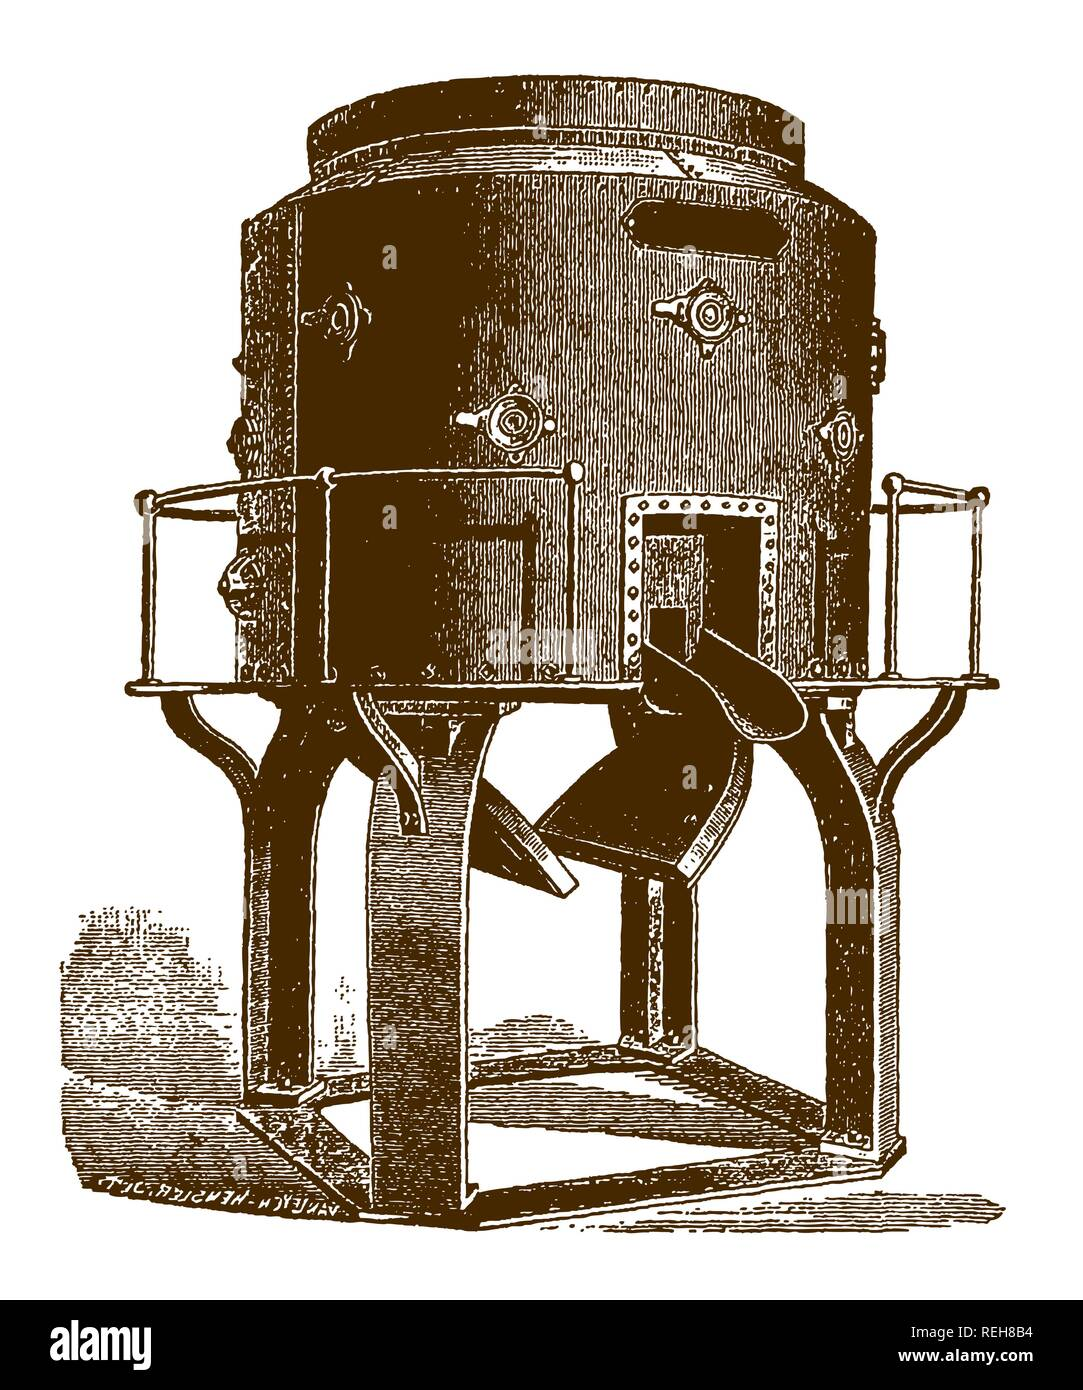 Historic cupola furnace for melting iron(after an engraving or etching from the 19th century) - Stock Image